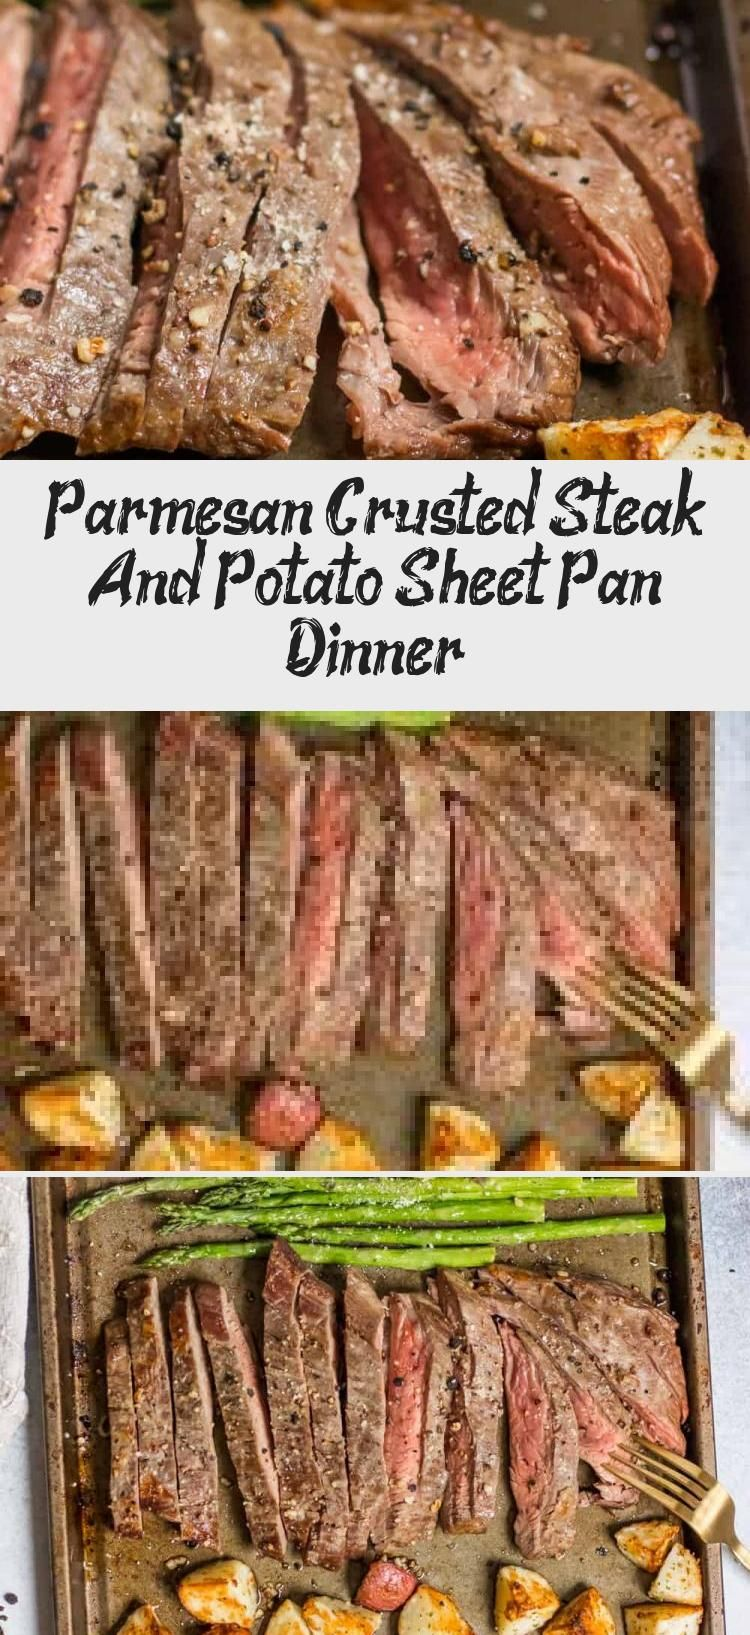 Parmesan Crusted Steak And Potato Sheet Pan Dinner Dinner on one pan with this Parmesan Crusted Steak and Potato Sheet Pan Dinner means simple and delicious dinner without the extra dishes! Juicy flank steak and crispy potatoes served with asparagus. A full meal on one pan!